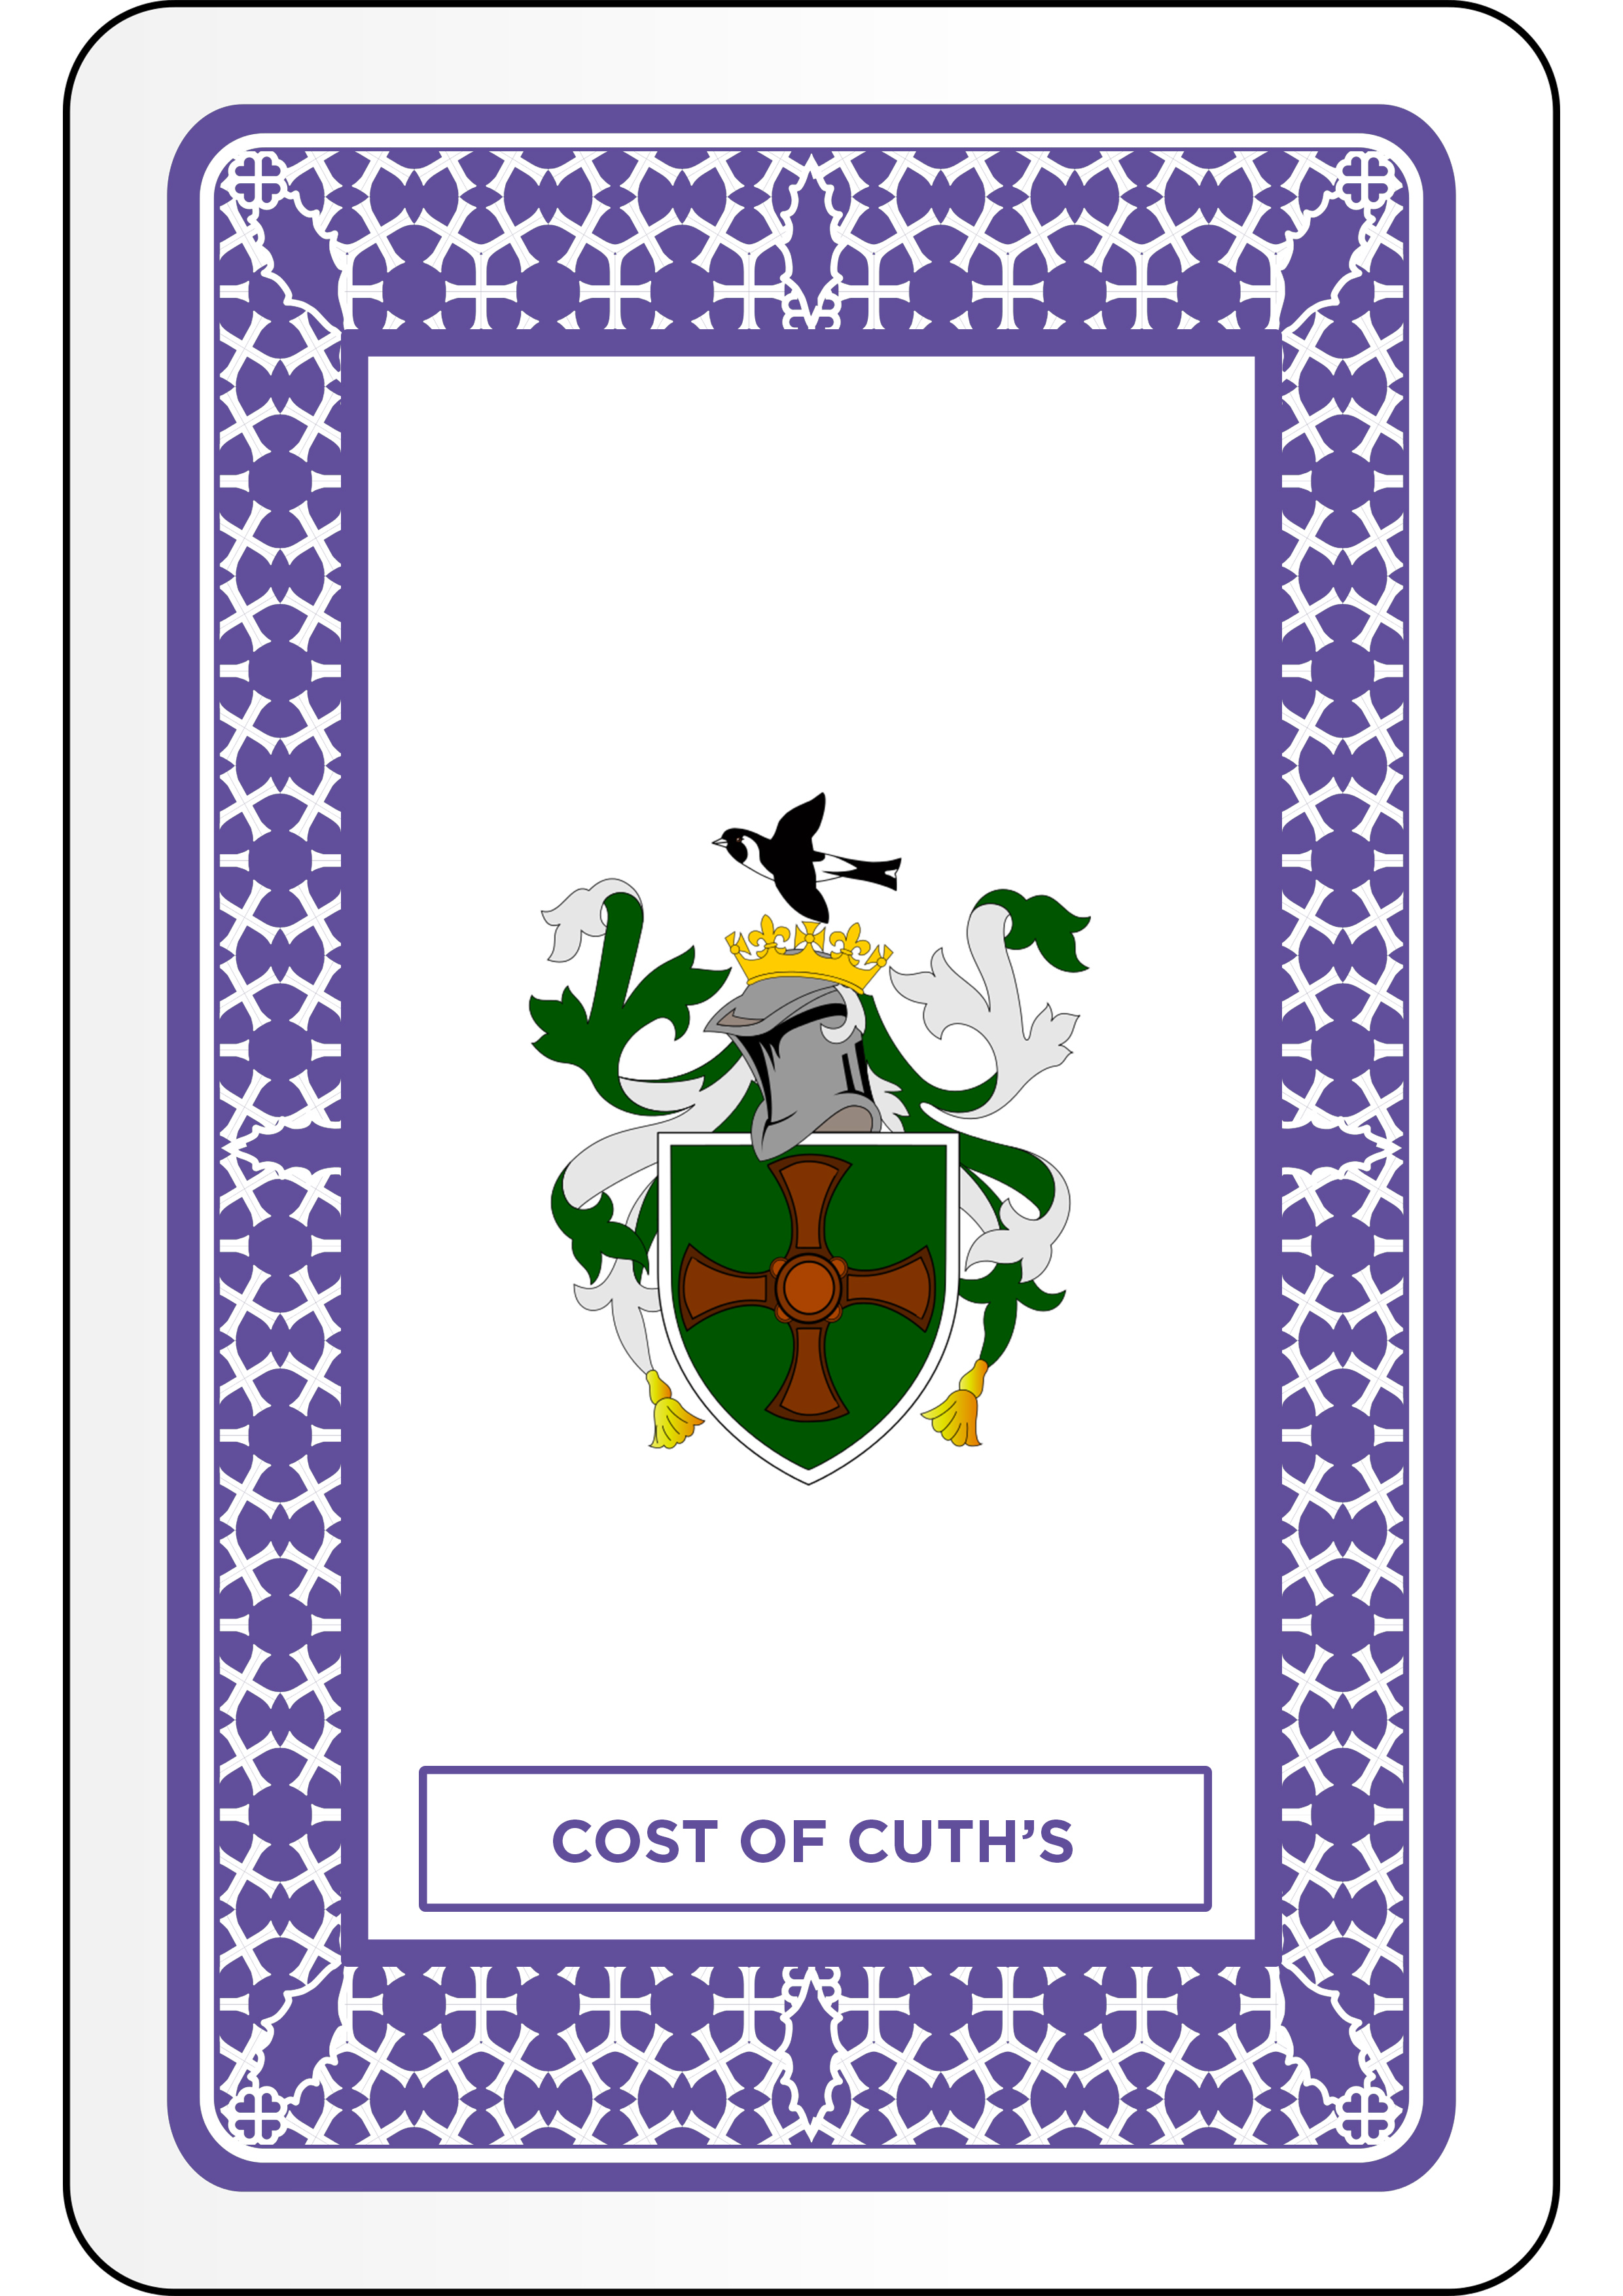 Cost of St Cuthberts